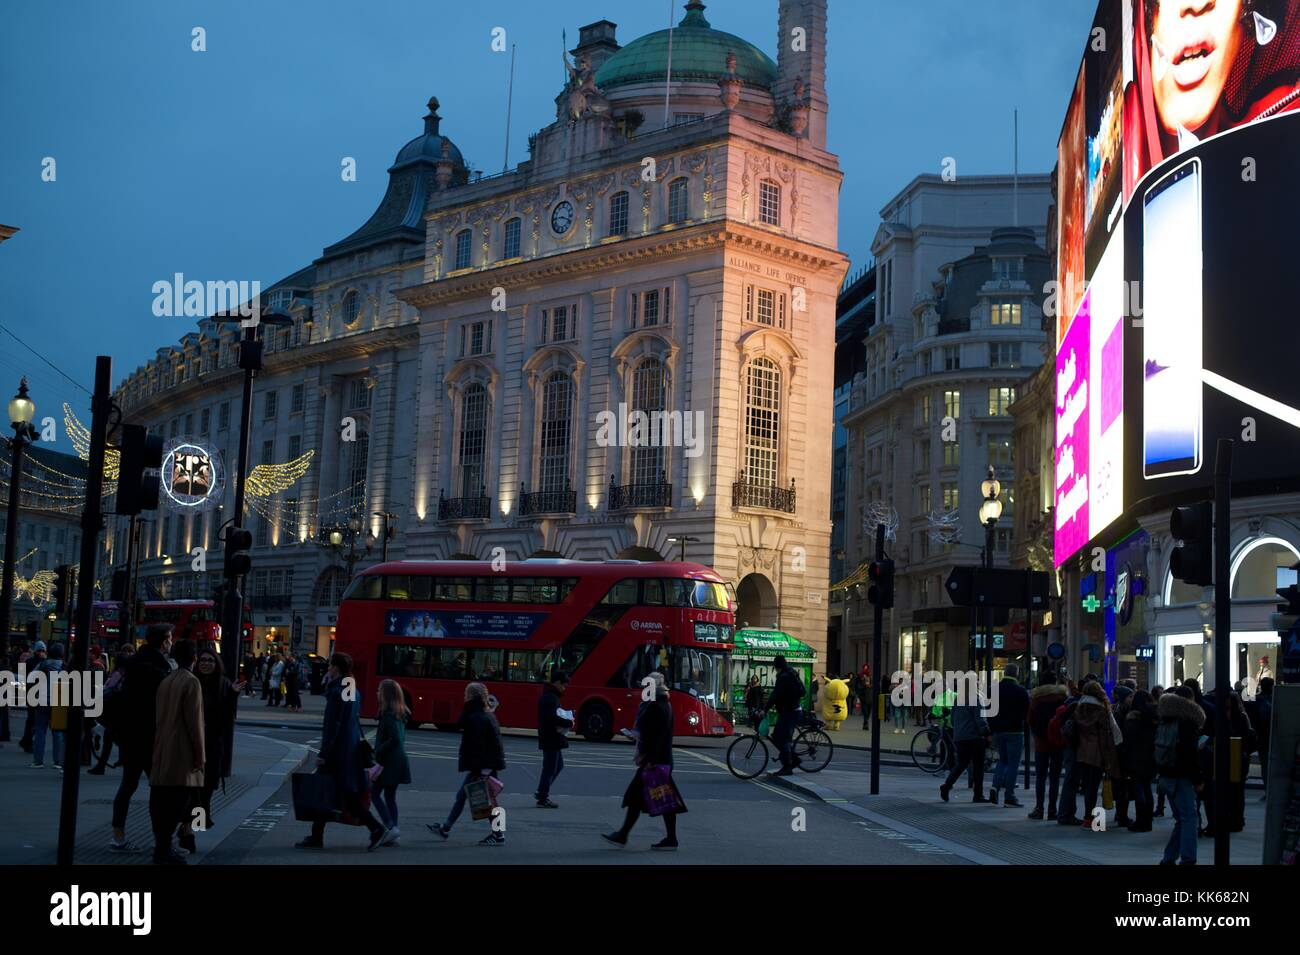 Regent Street, Piccadilly - Stock Image